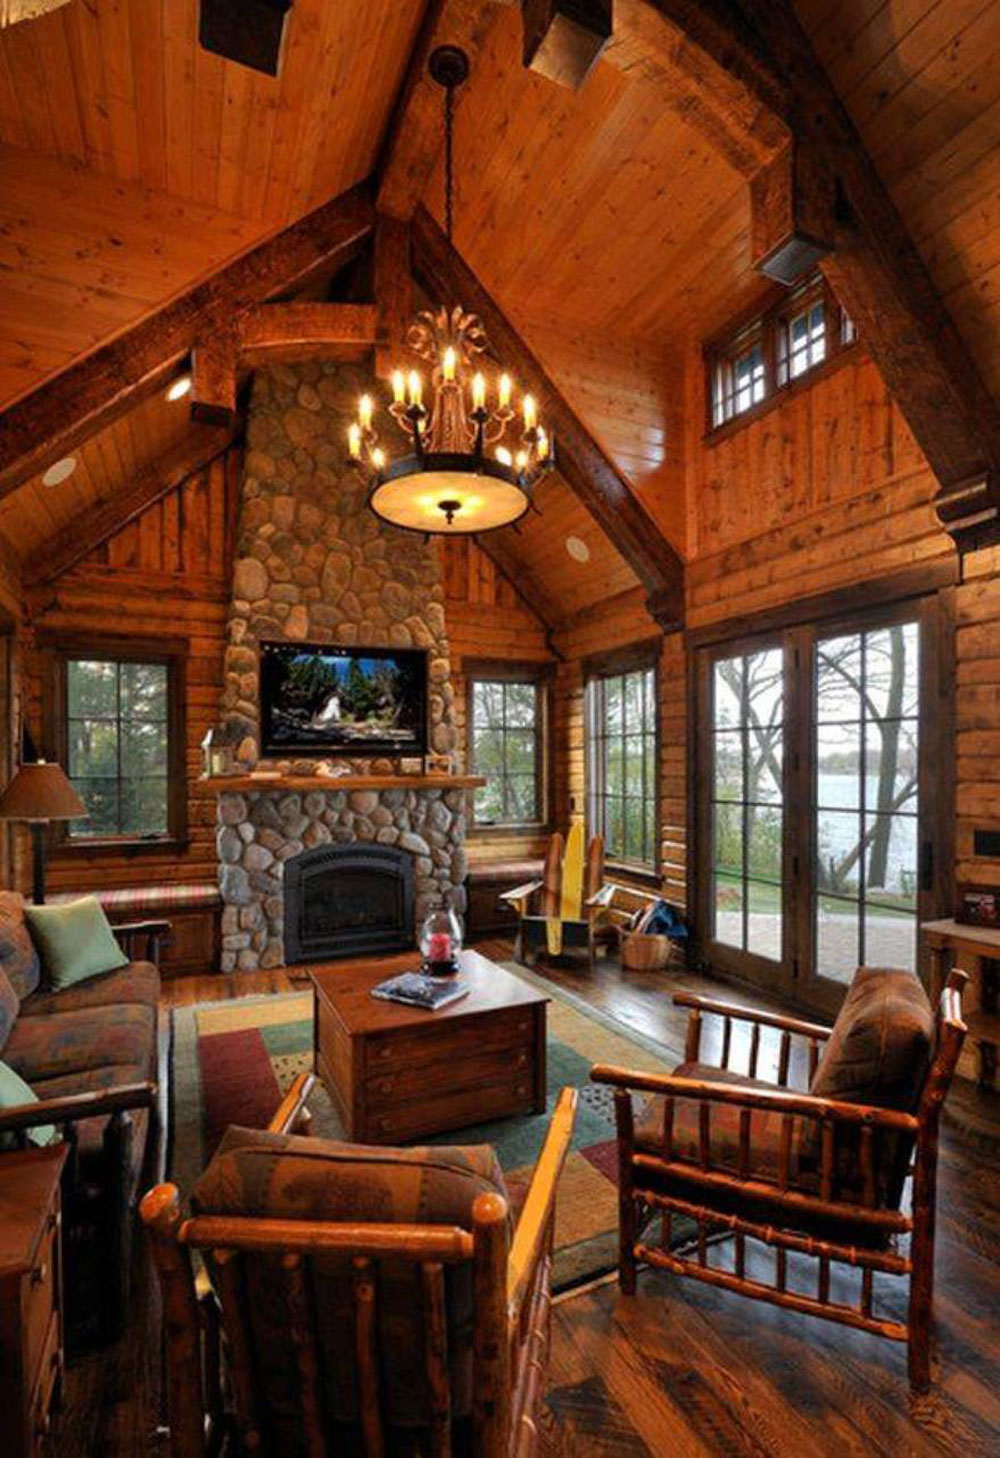 Vaulted Ceiling Living Room Design Ideas (10) - Vaulted Ceiling Living Room Design Ideas